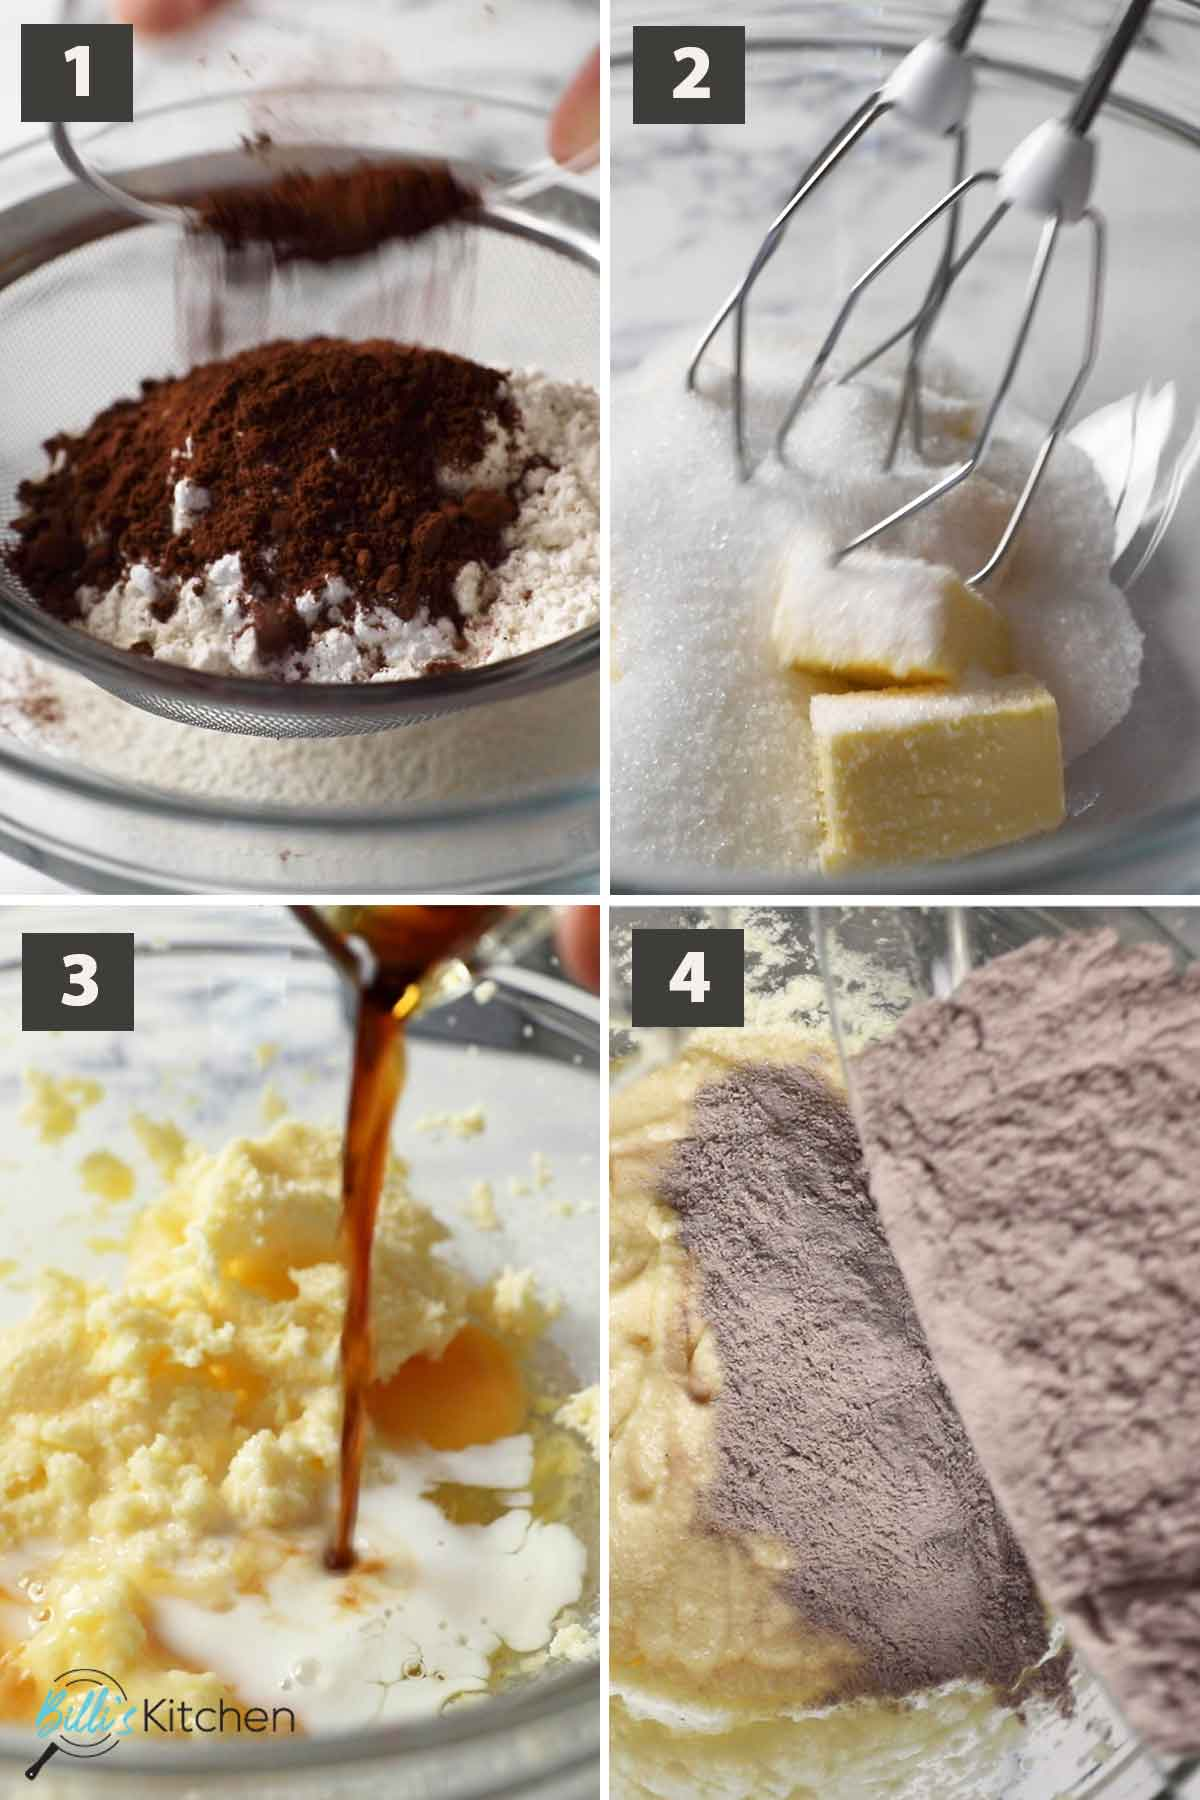 First part of a collage off images showing the step by step process of making chocolate walnut butter cake.